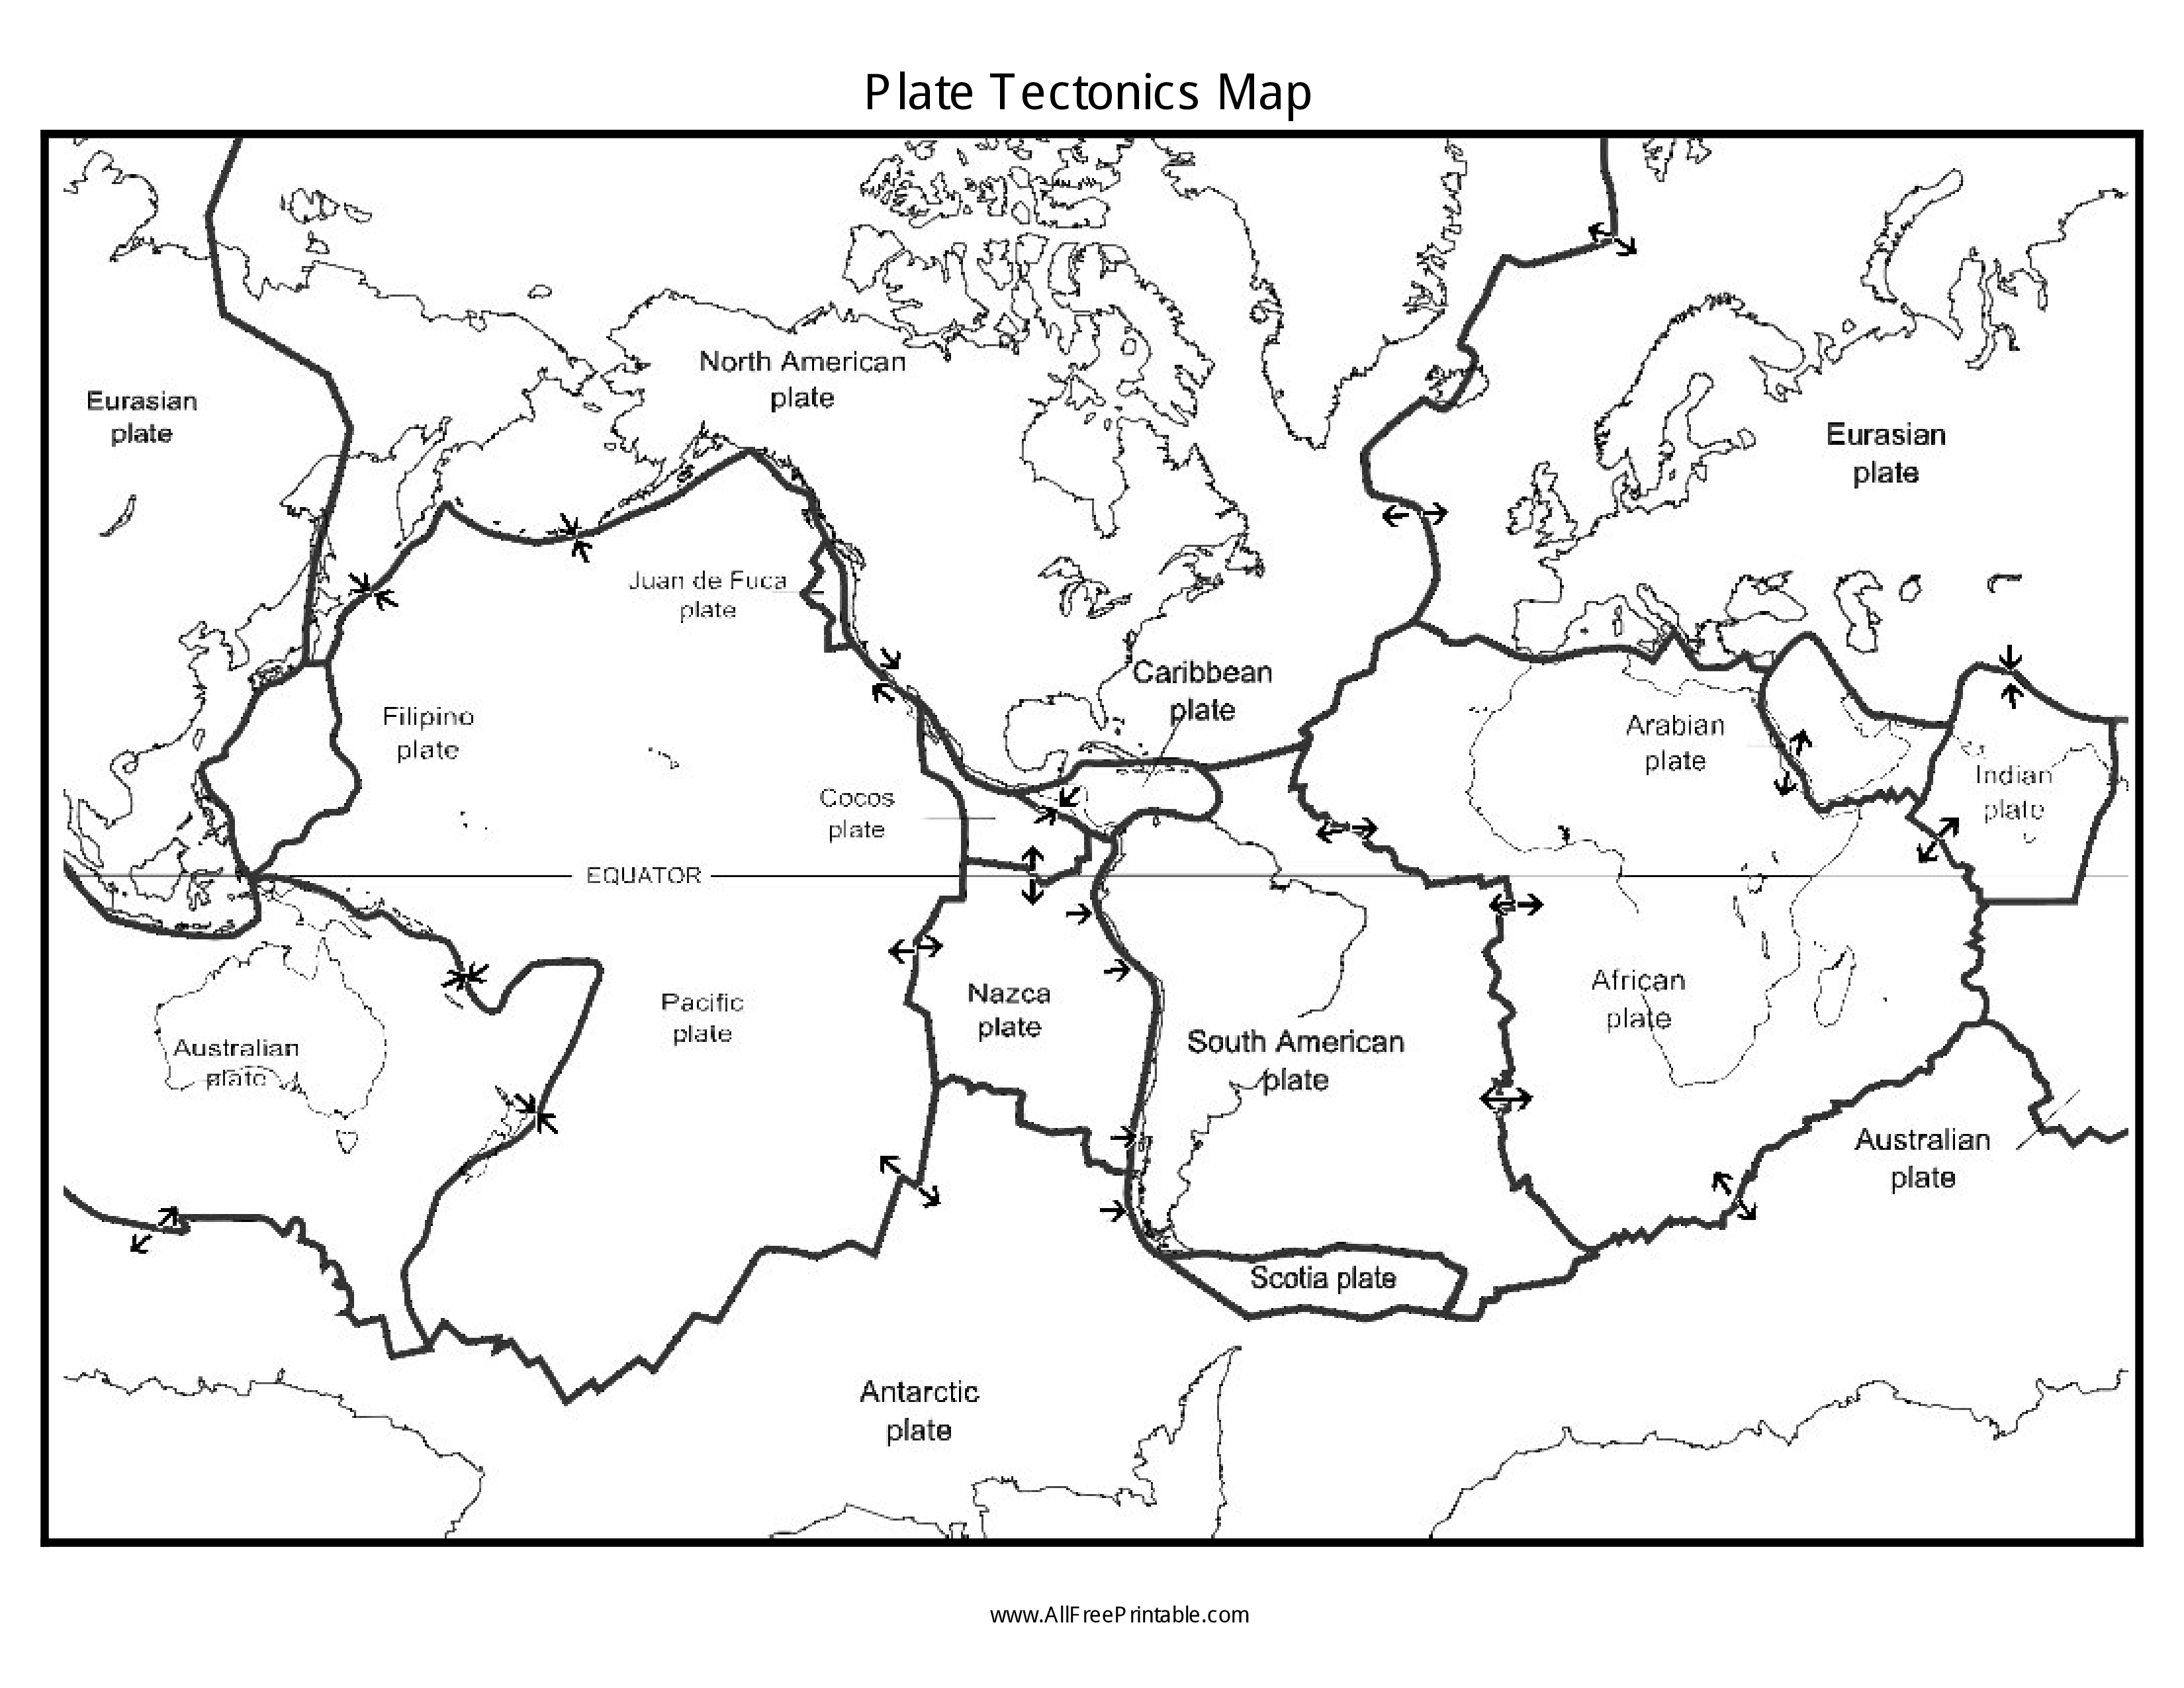 Free Plate Tectonics Map | Templates at allbusinesstemplates.com